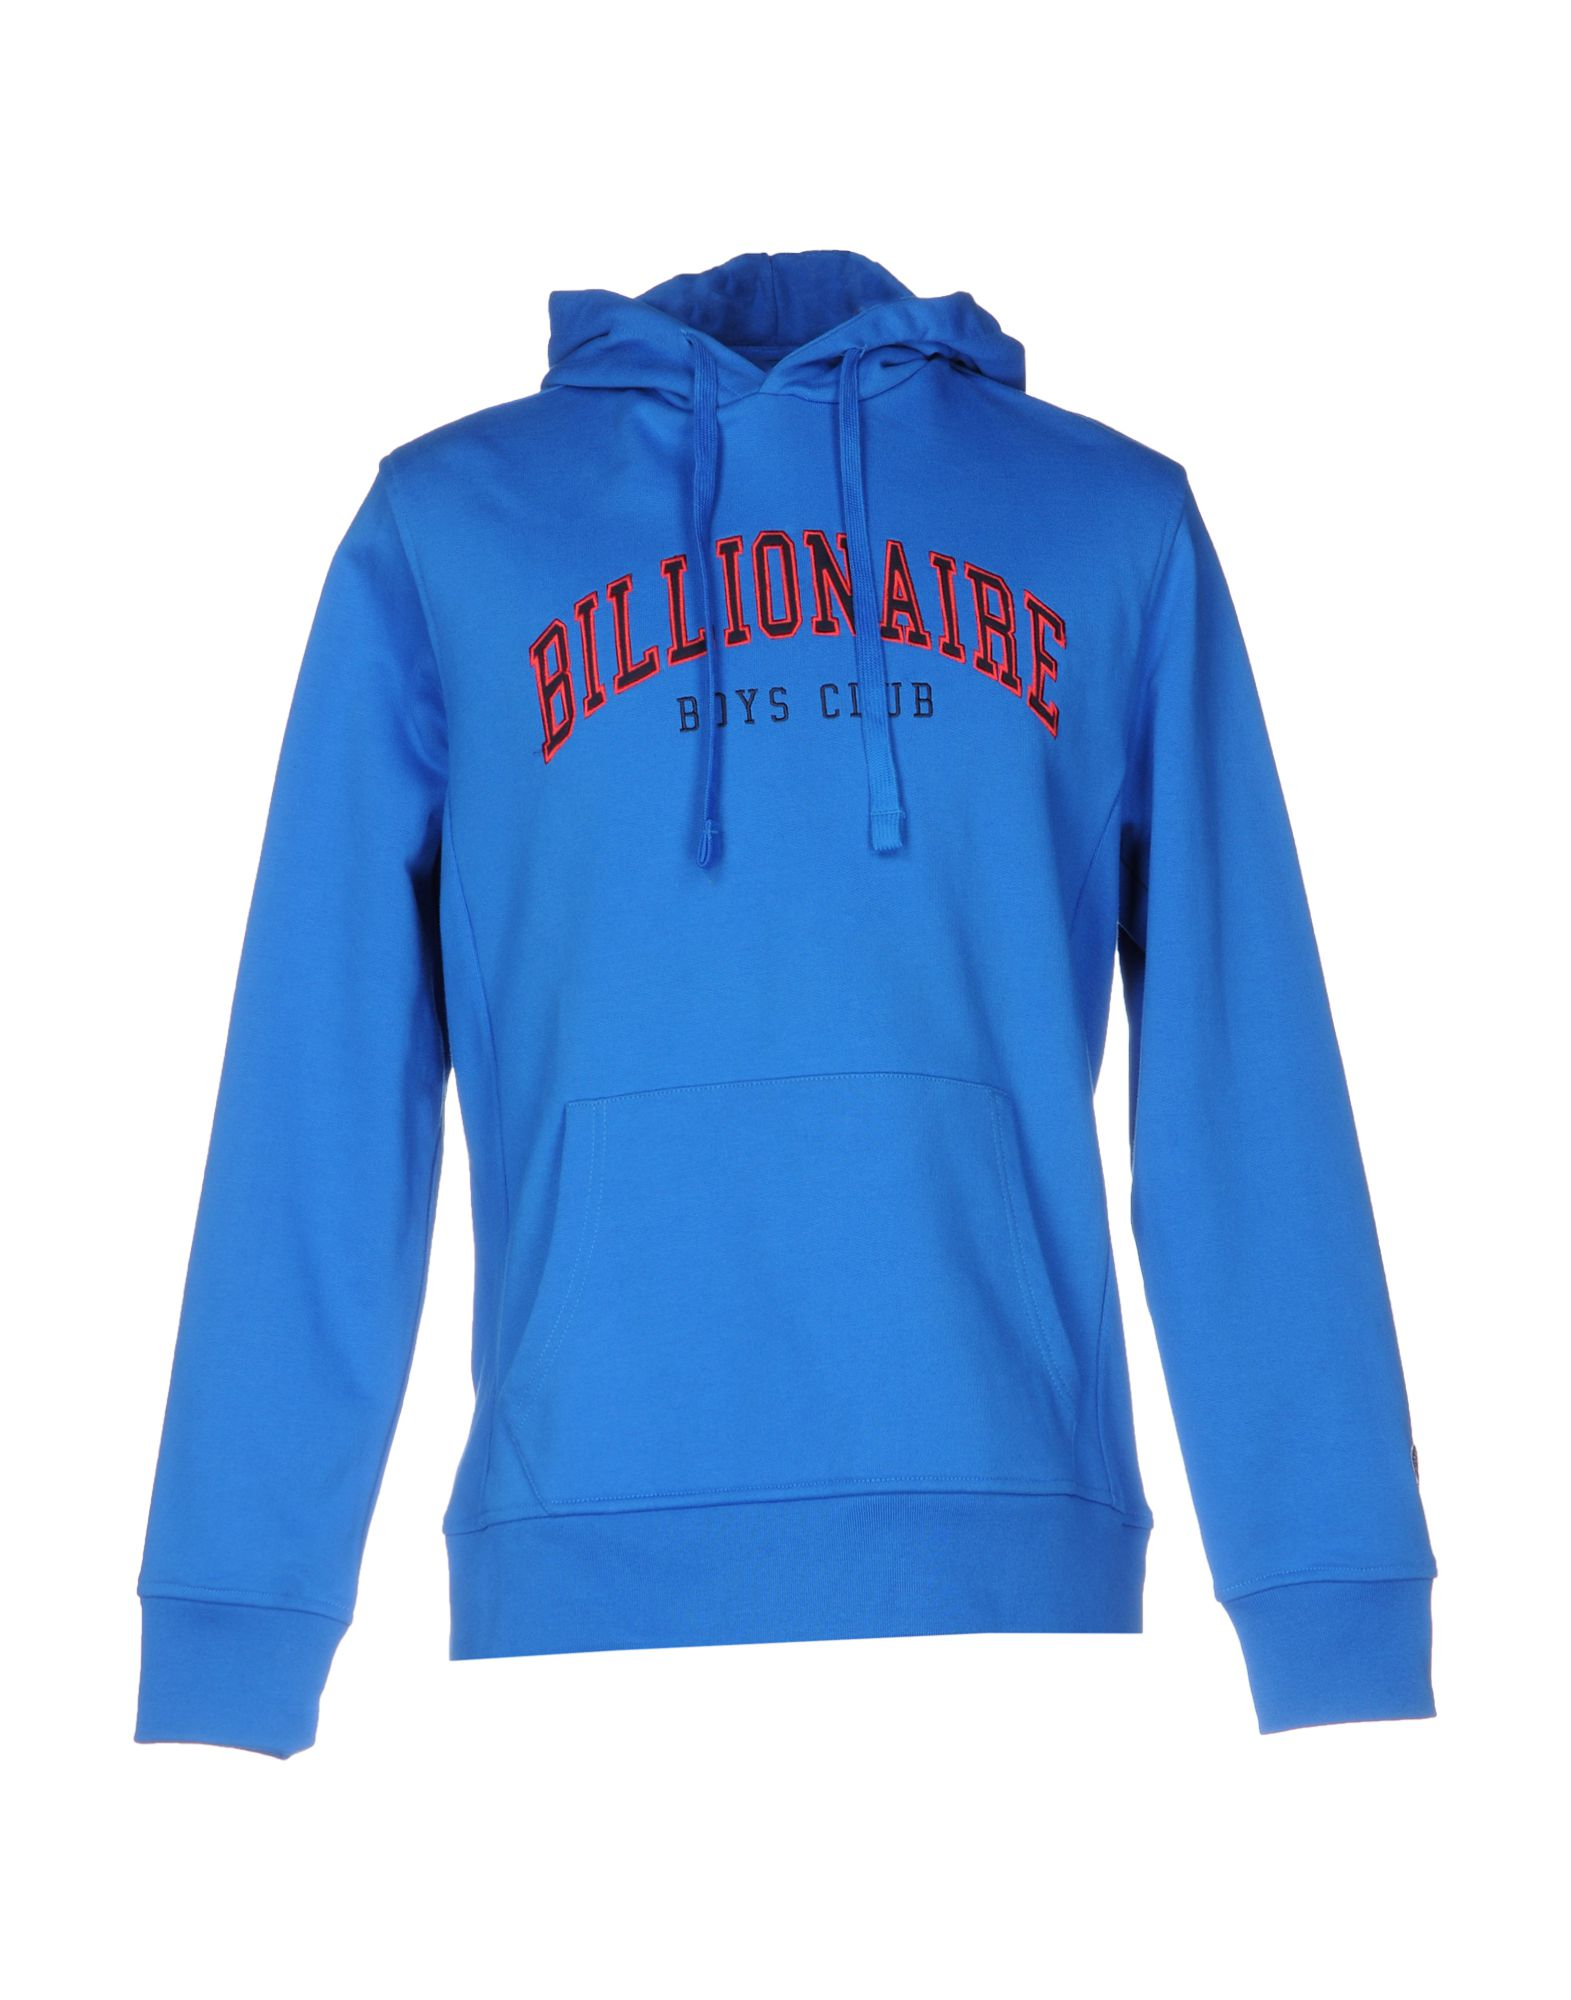 'BILLIONAIRE BOYS CLUB Sweatshirts